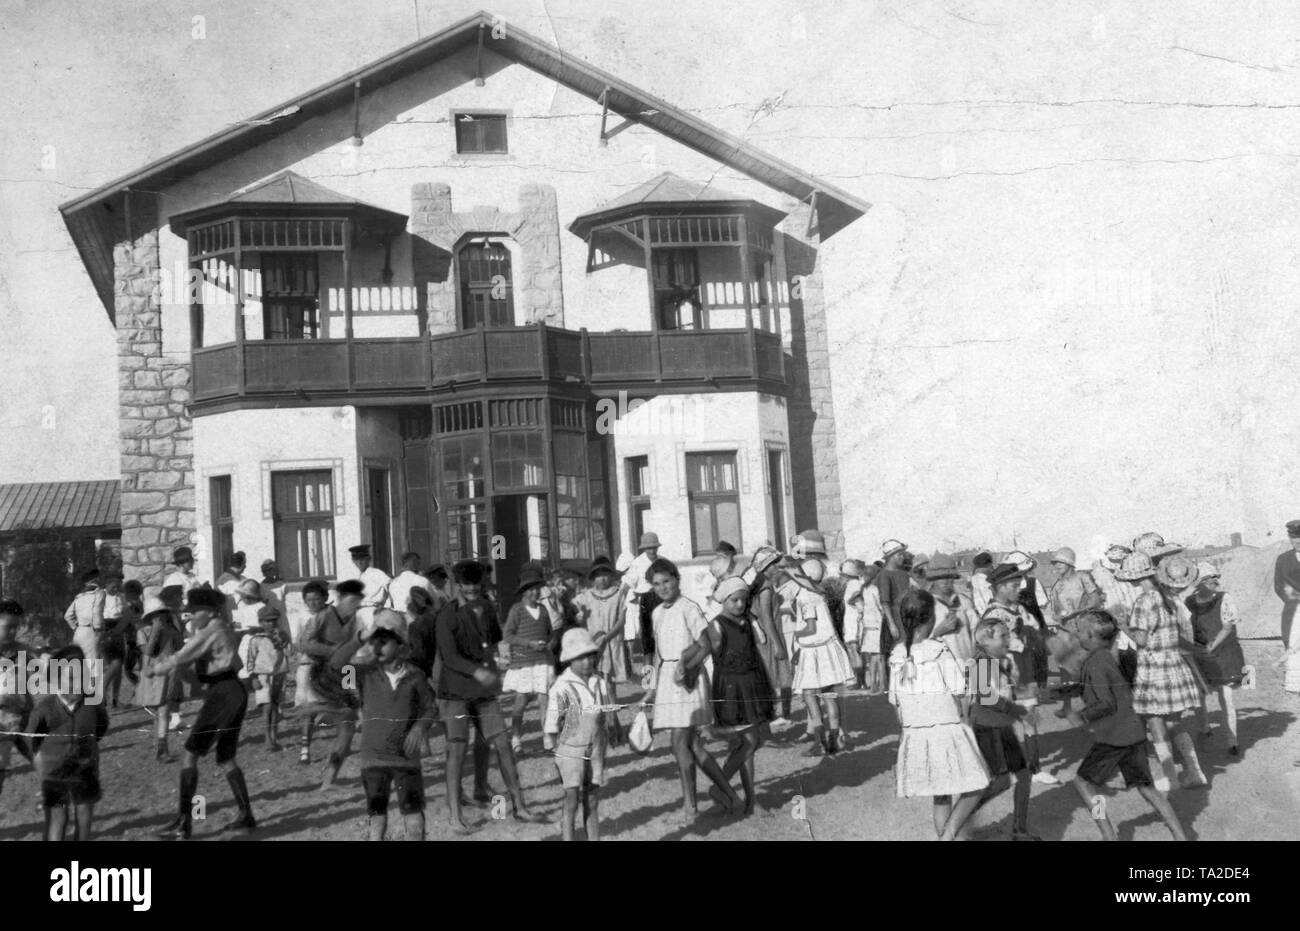 German children play in front of the building of the German School in Luederitz Bay, German South-West Africa. - Stock Image